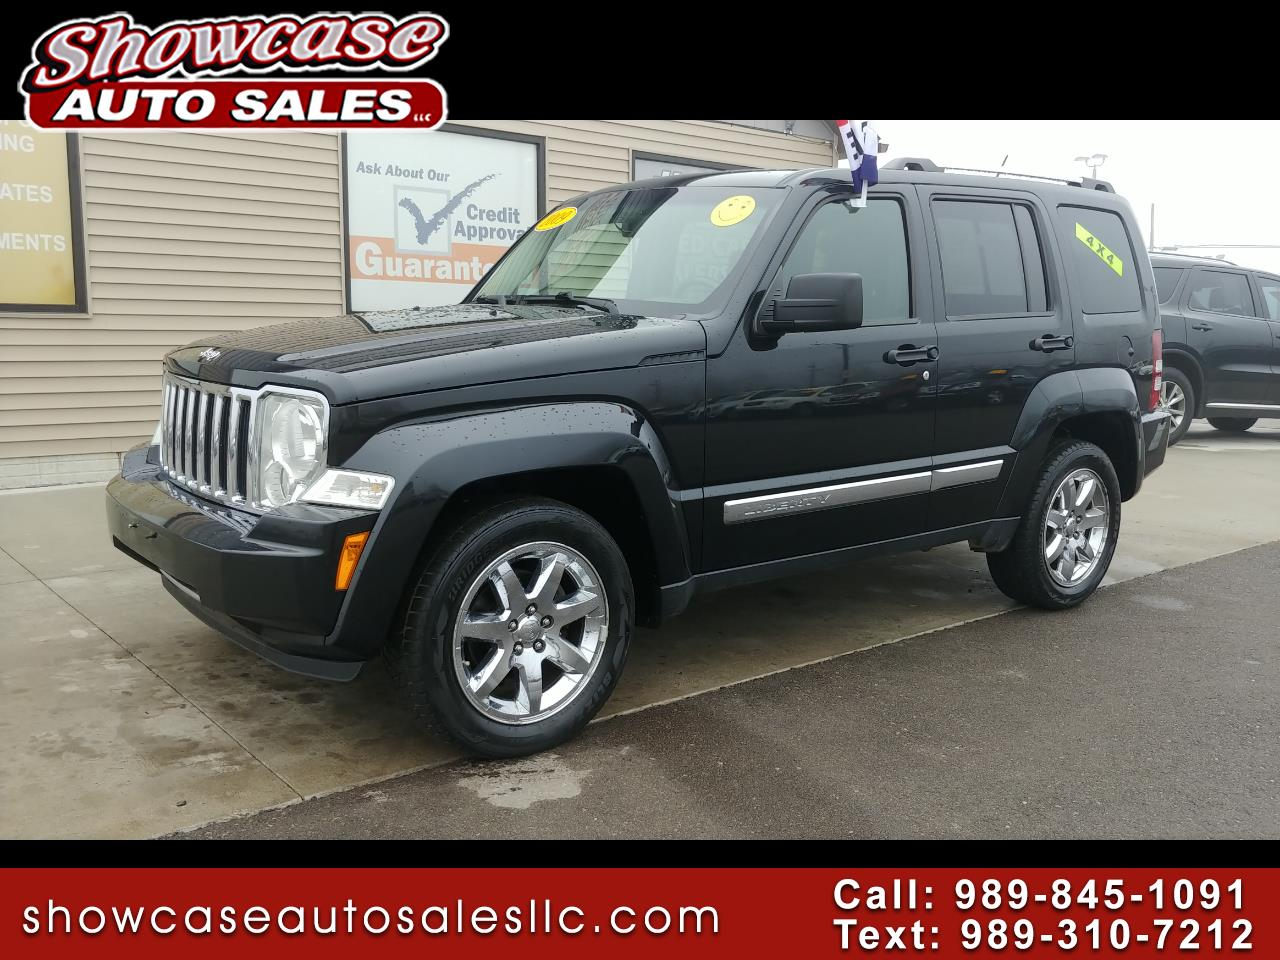 2009 Jeep Liberty 4WD 4dr Limited